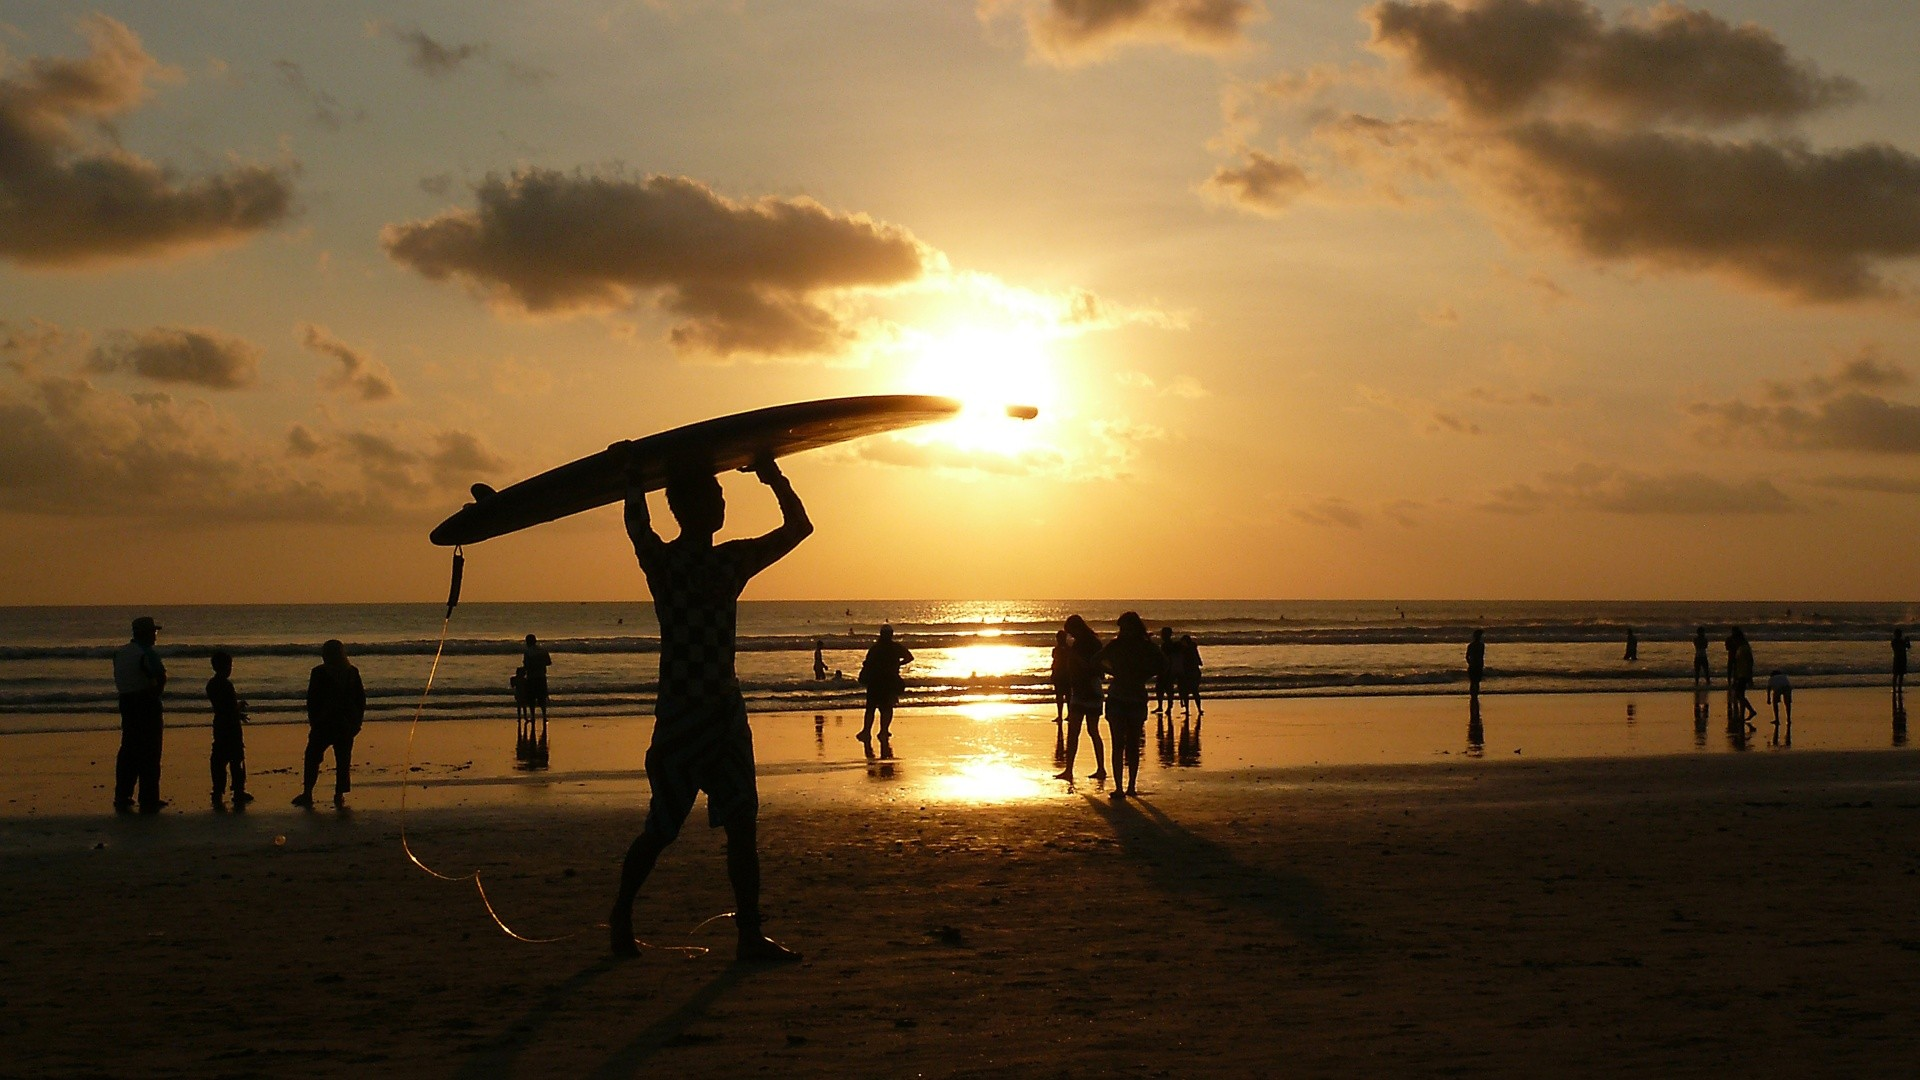 Howard Briscoe's photo of Kuta